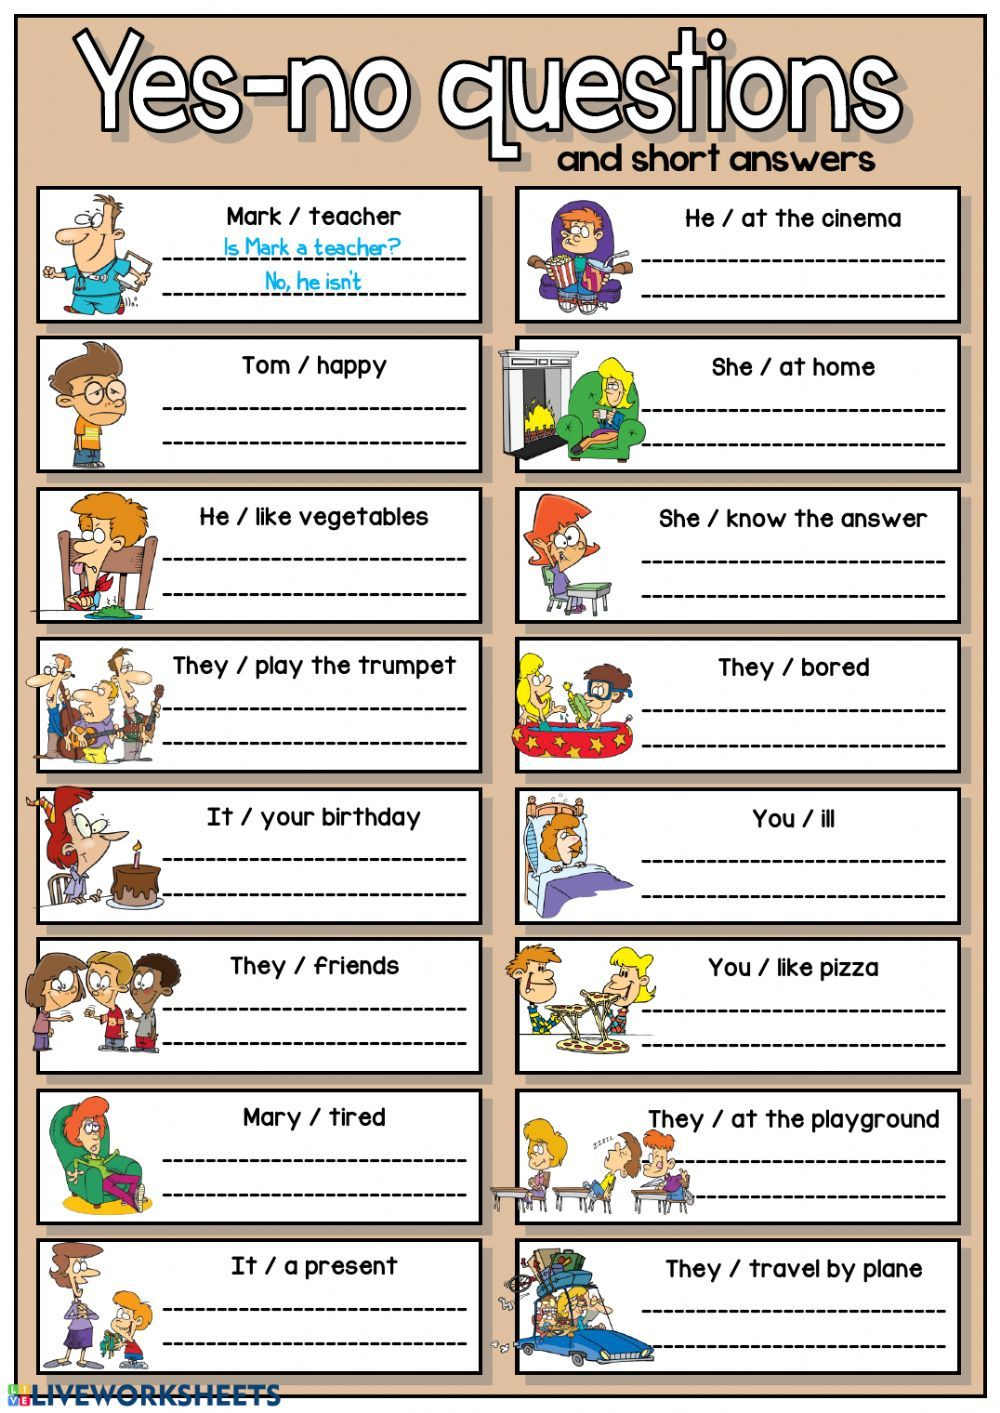 hight resolution of https://cute766.info/present-simple-reading-yes-no-and-wh-questions-worksheet-free-esl-printable-worksheets-made/